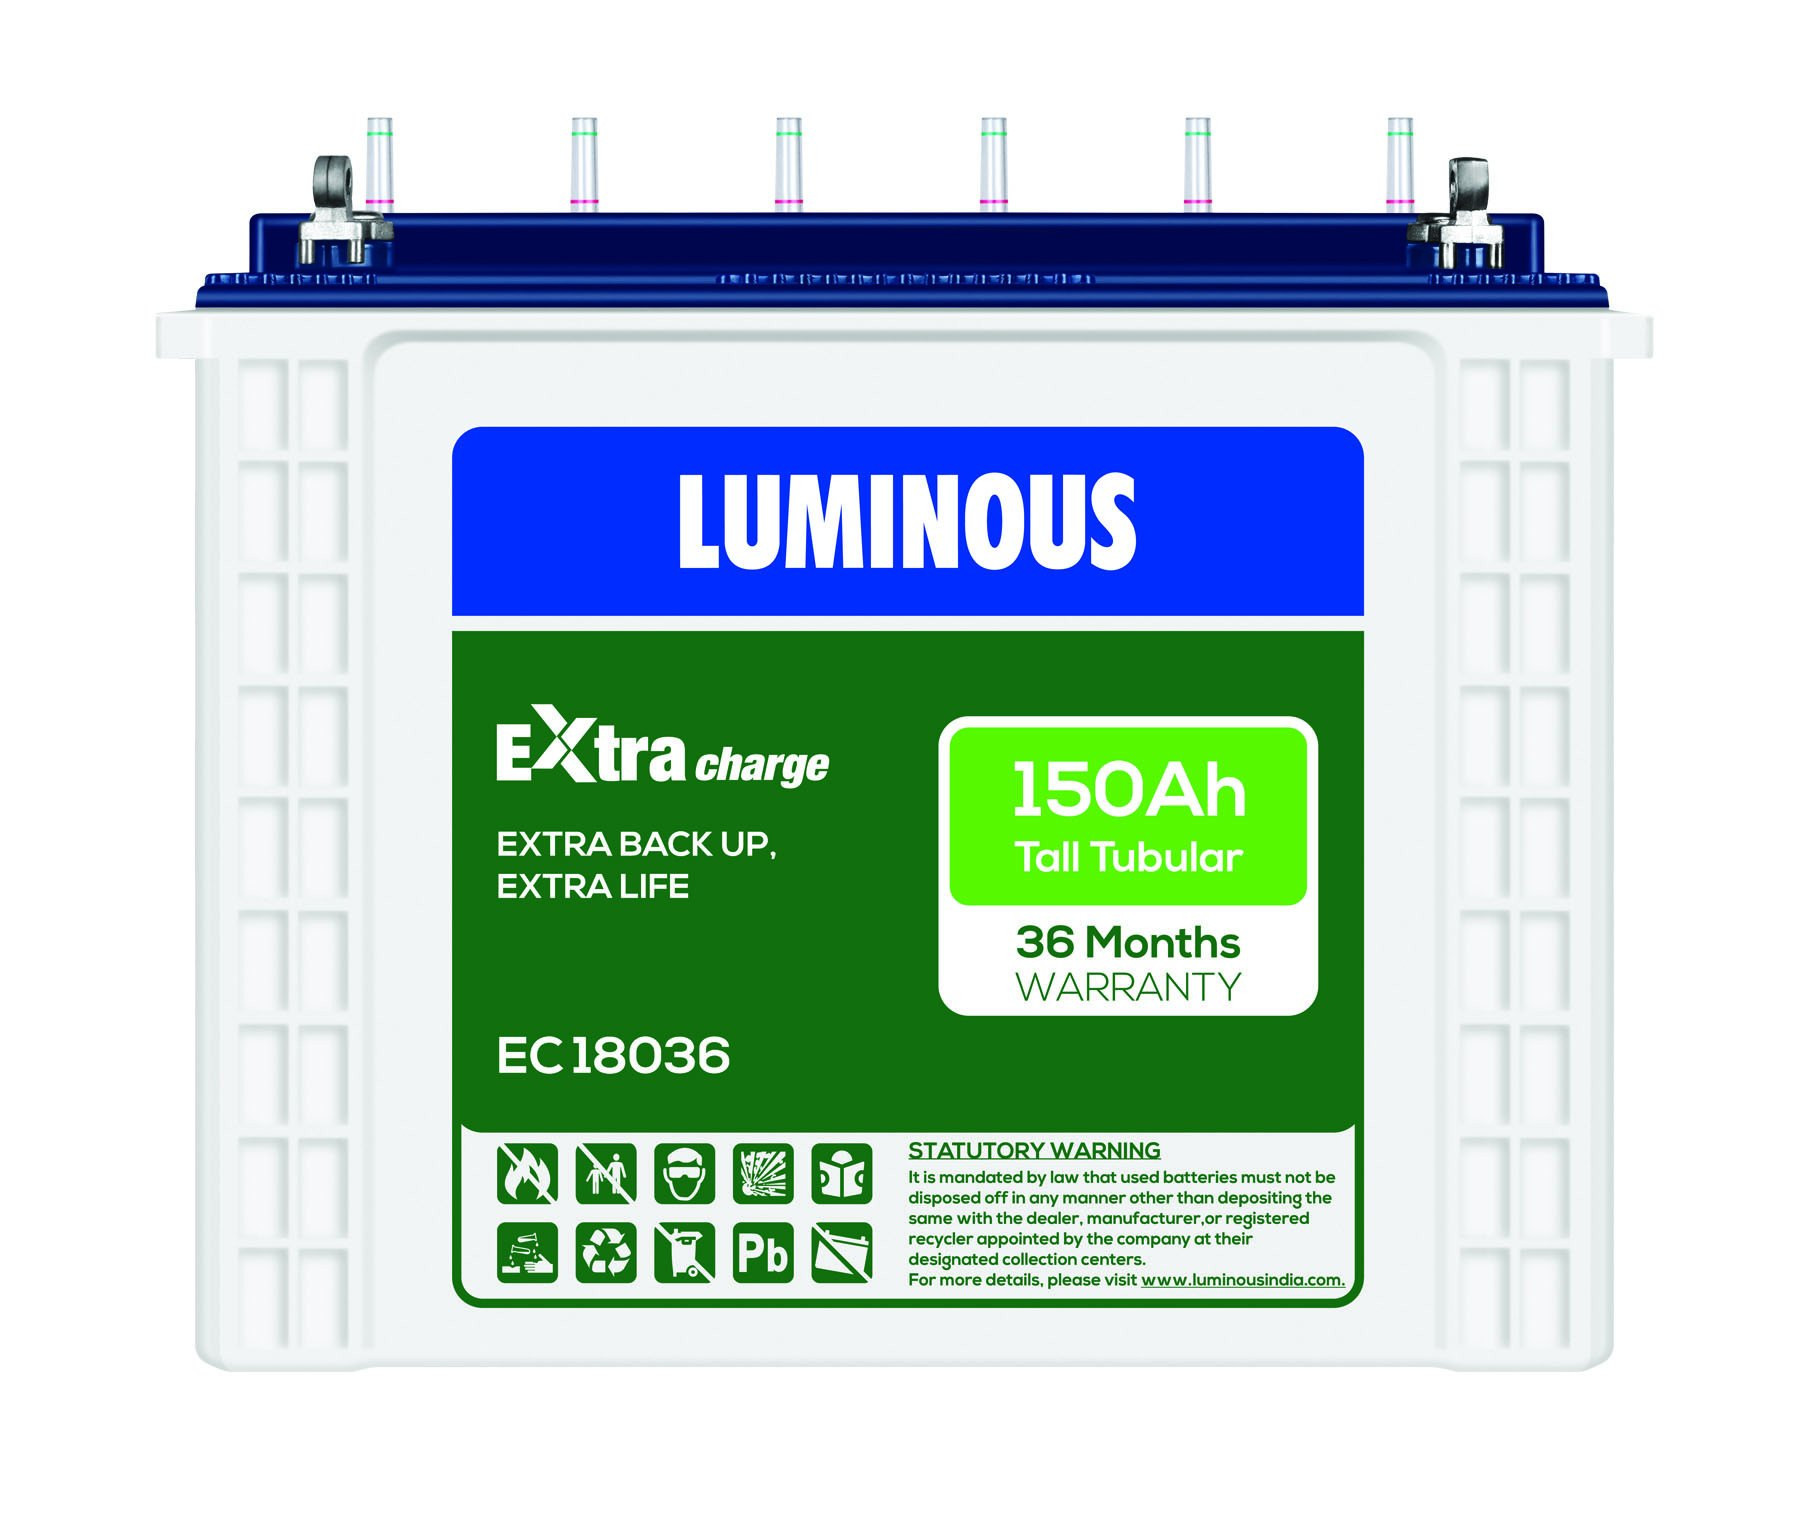 LUMINOUS EXtra Charge 150AH TALL TUBULAR BATTERY EC 18036